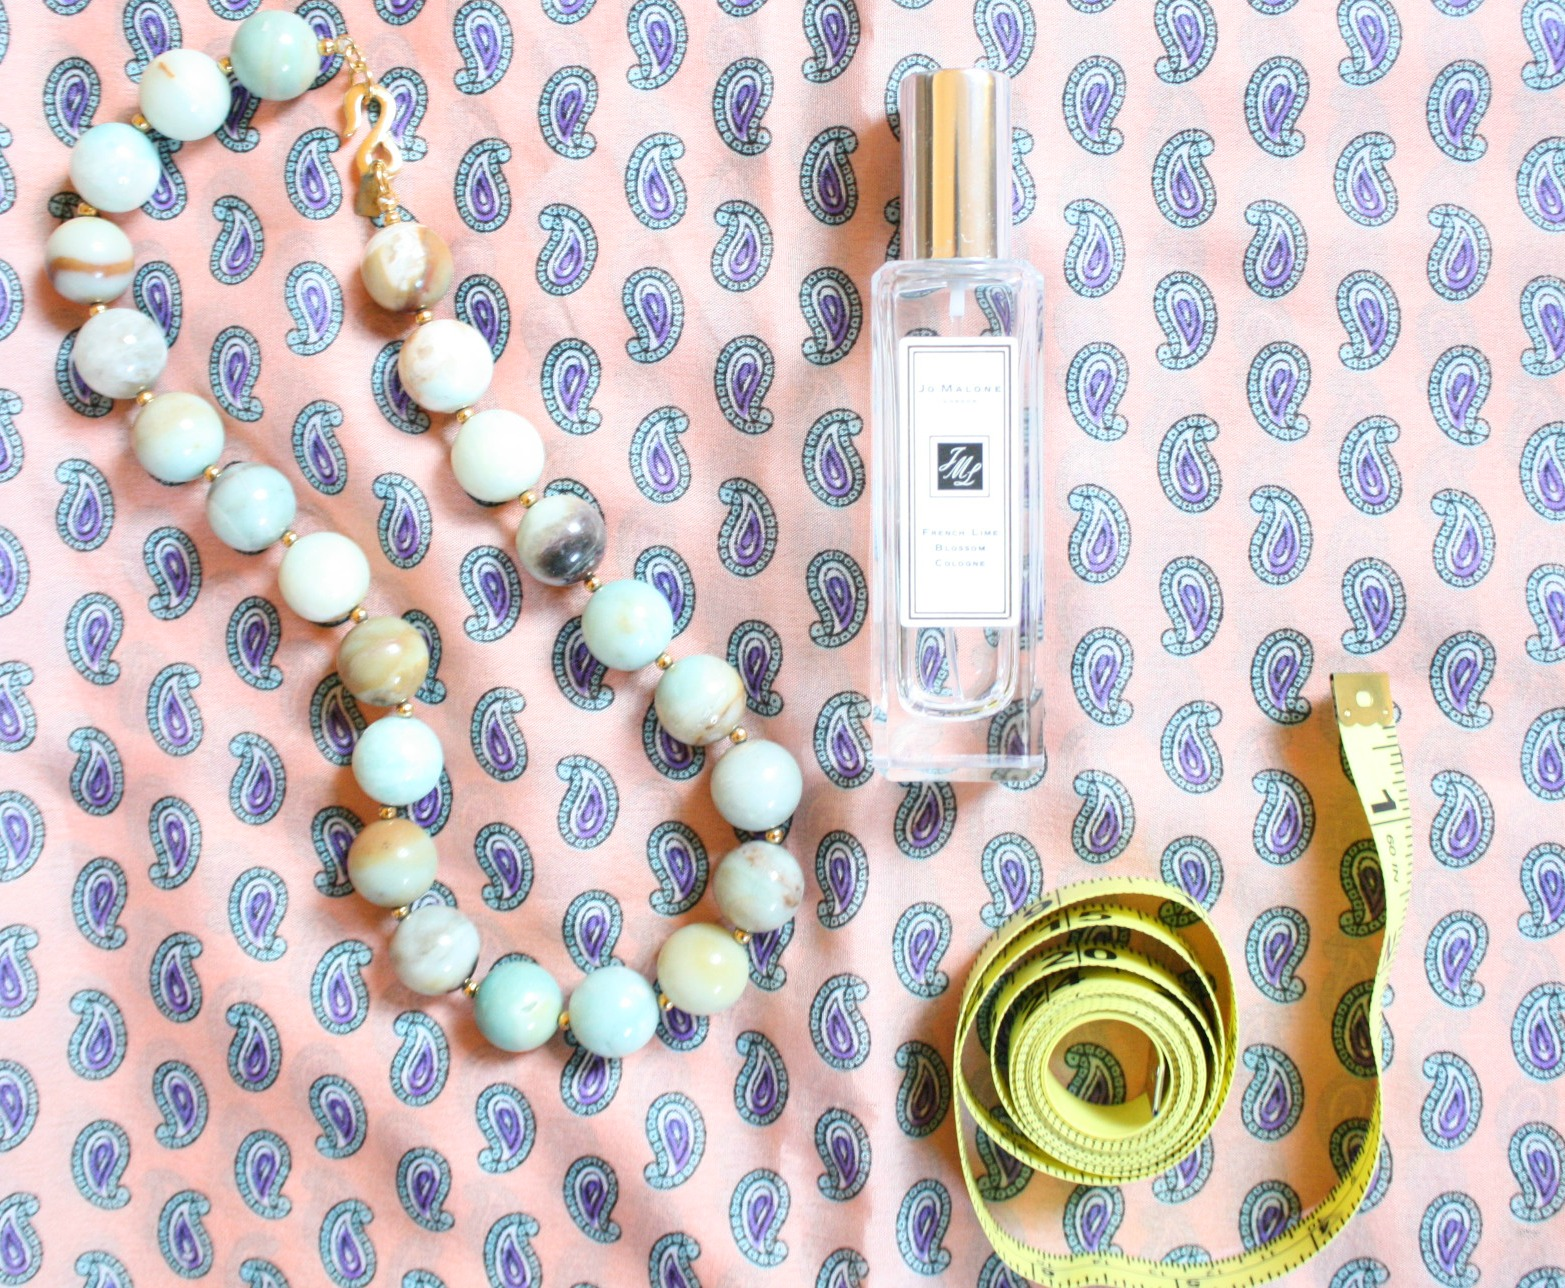 scents and baubles